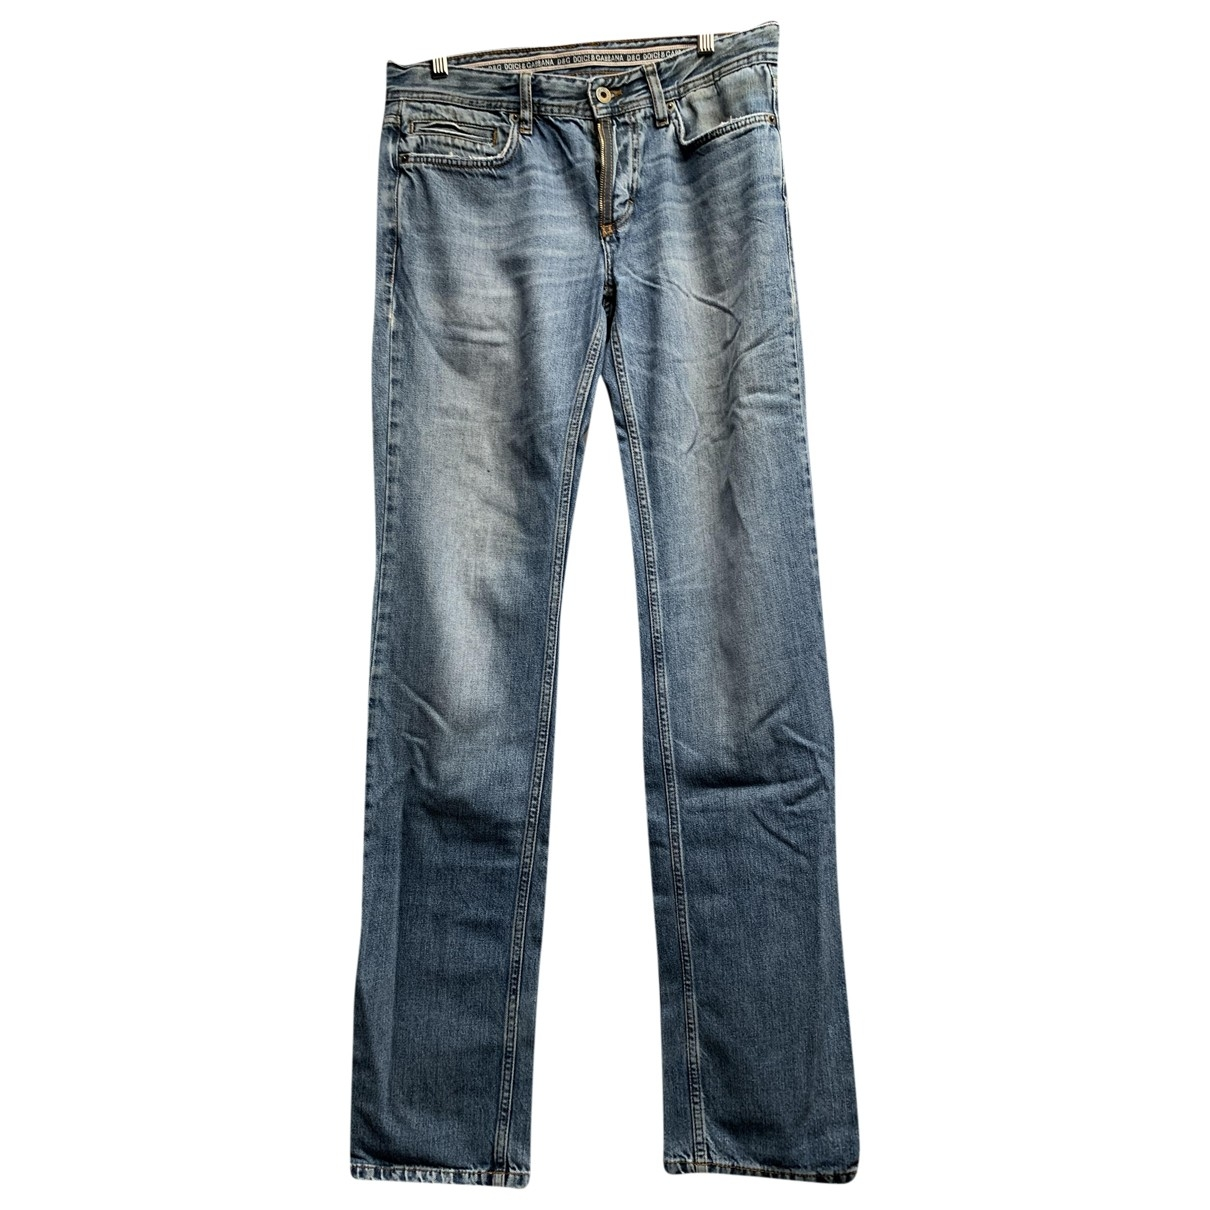 D&g \N Blue Jeans for Men 32 US